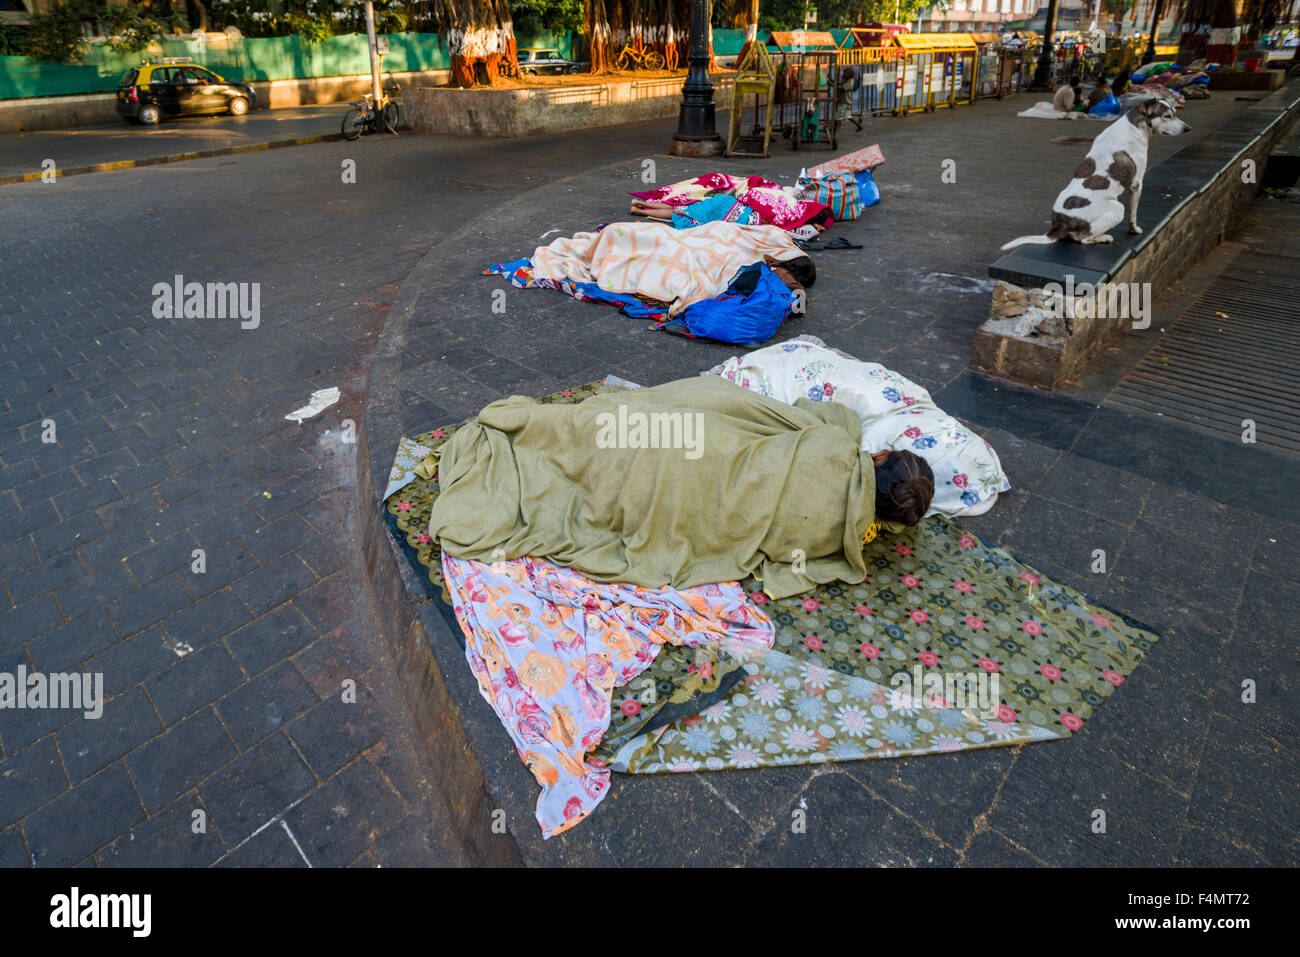 Homeless people are living under extrem conditions, sleeping on the pedestrian path Stock Photo